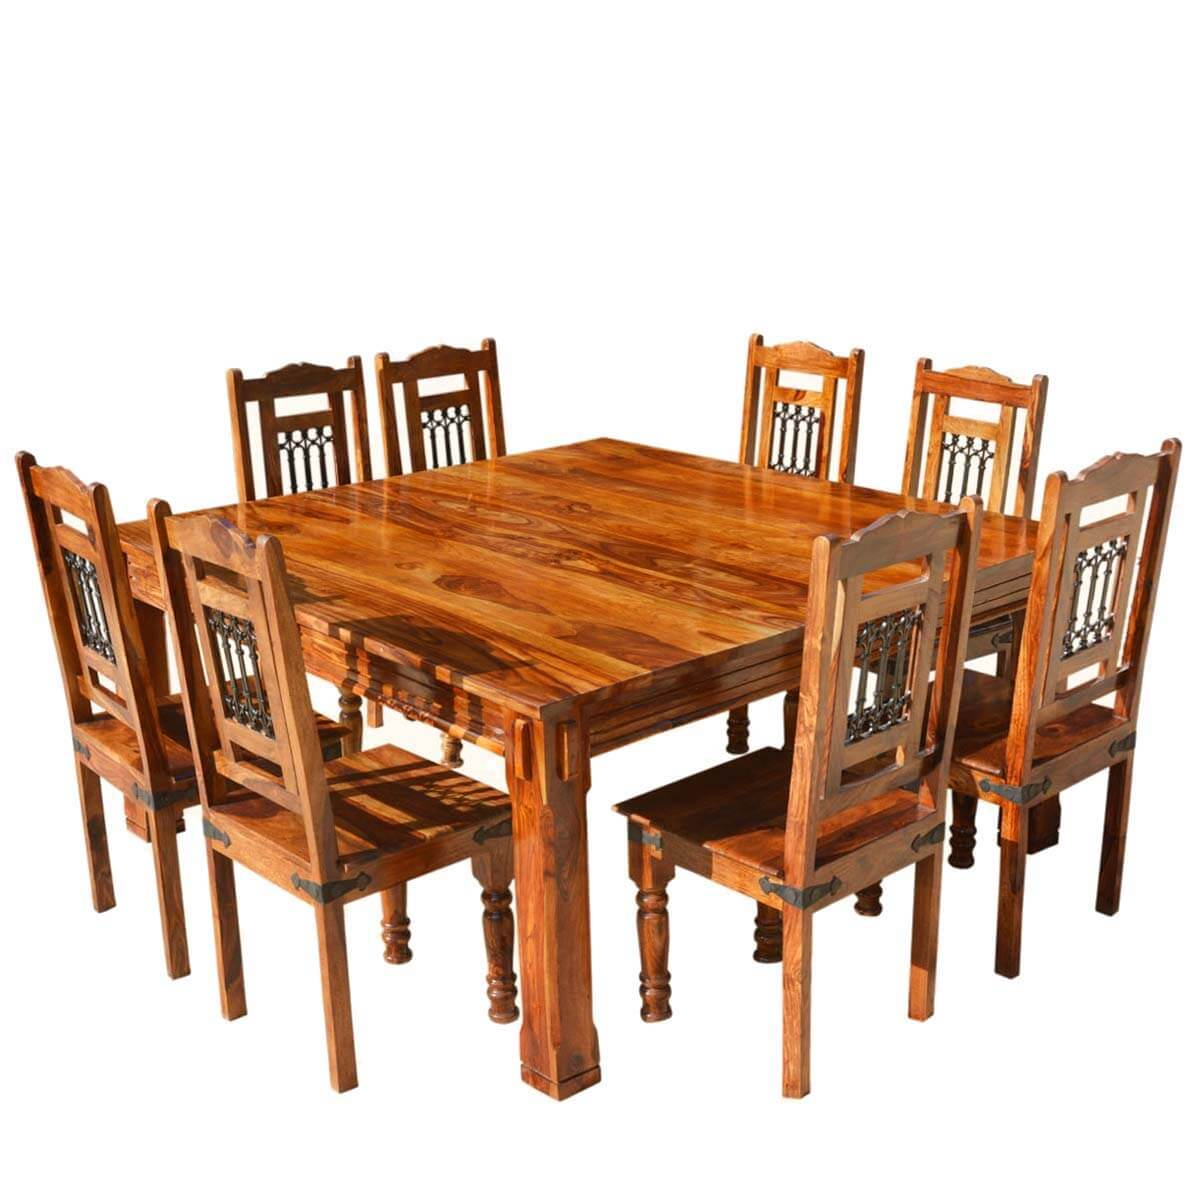 Rustic solid wood square block legs dining table for Dinner table wood